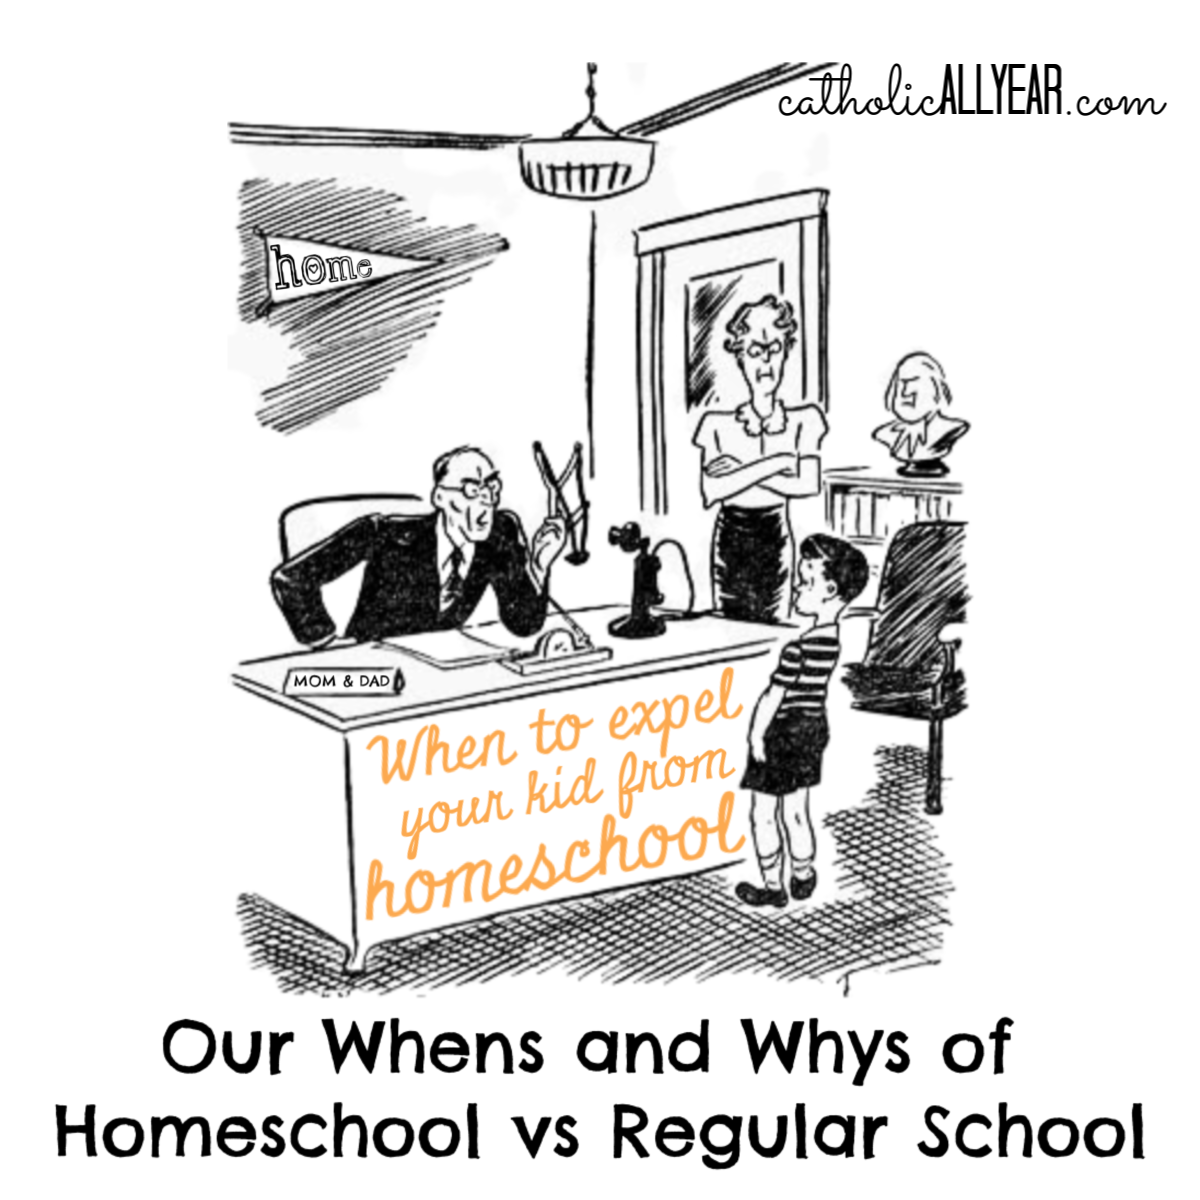 When to Expel Your Kid From Homeschool: Circles of Influence and Homeschool vs Regular School